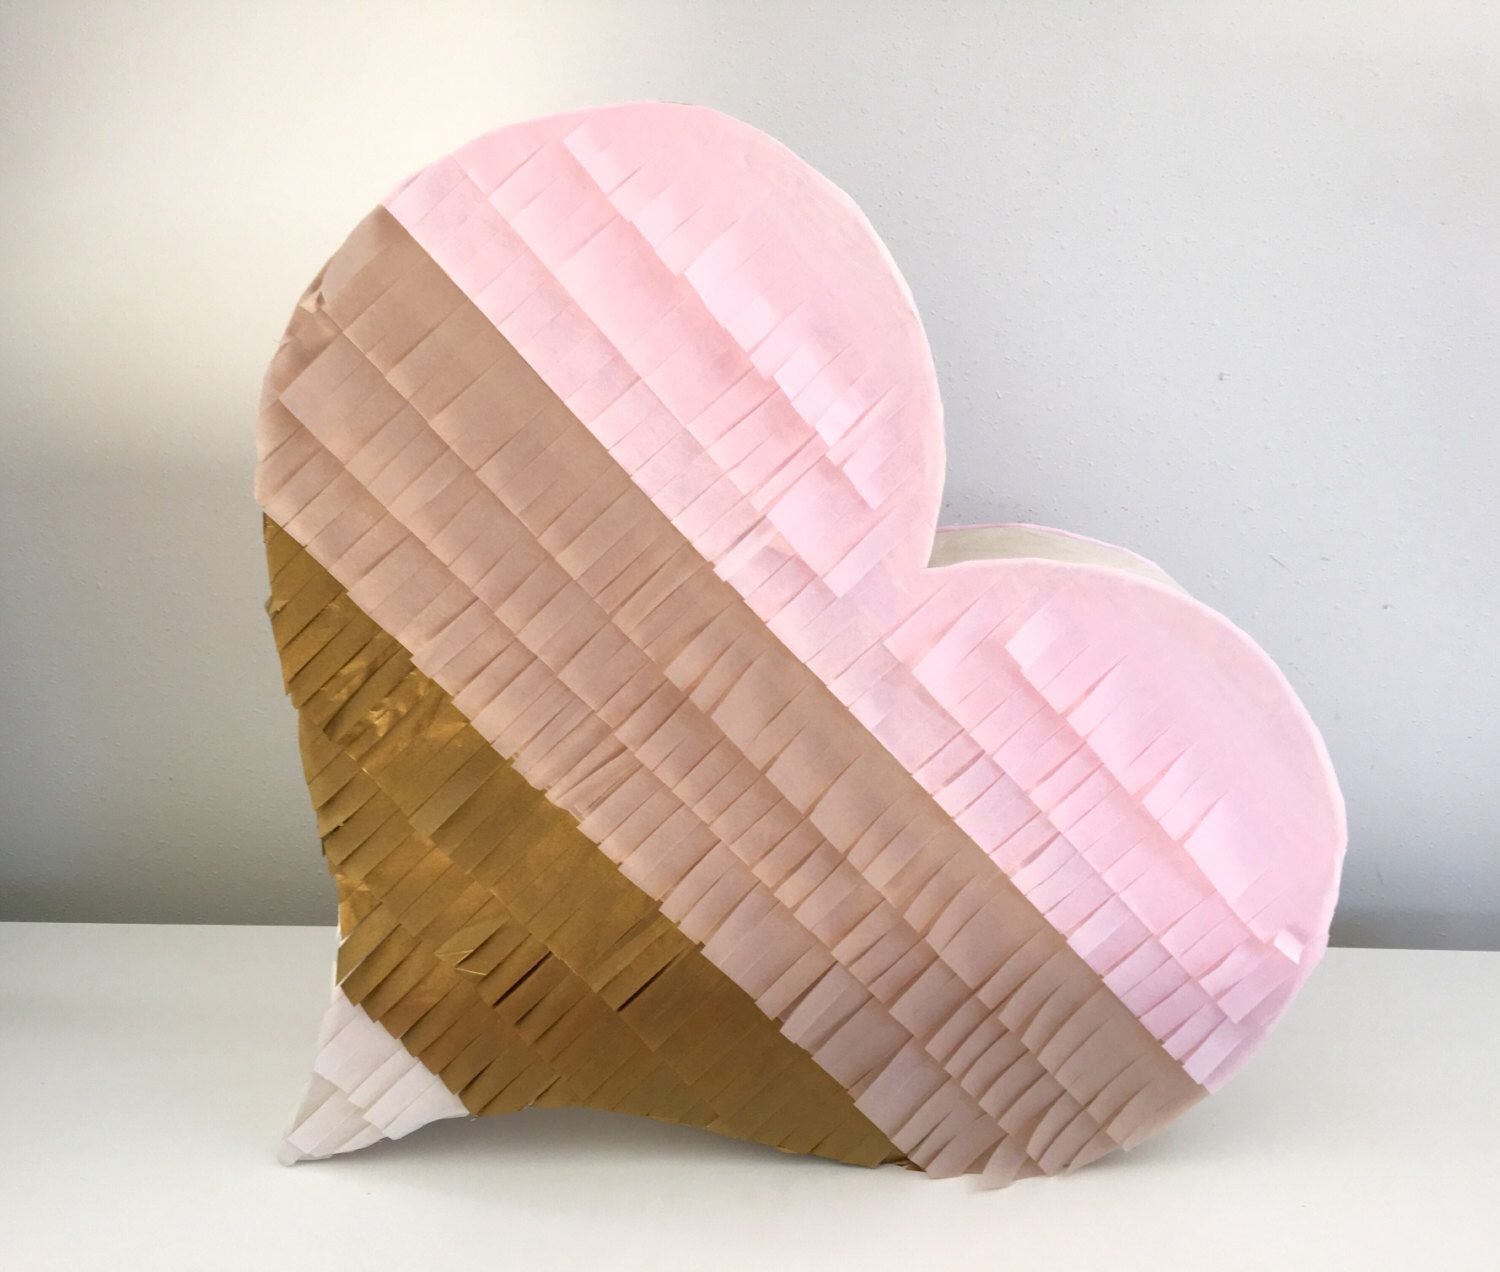 wedding pinata Wedding Pinata Wedding Guest Book Pinata Blush Baby Pink Antique Gold and Ivory Heart Pi ata Heart Shaped Pi ata Blush Wedding Pi ata